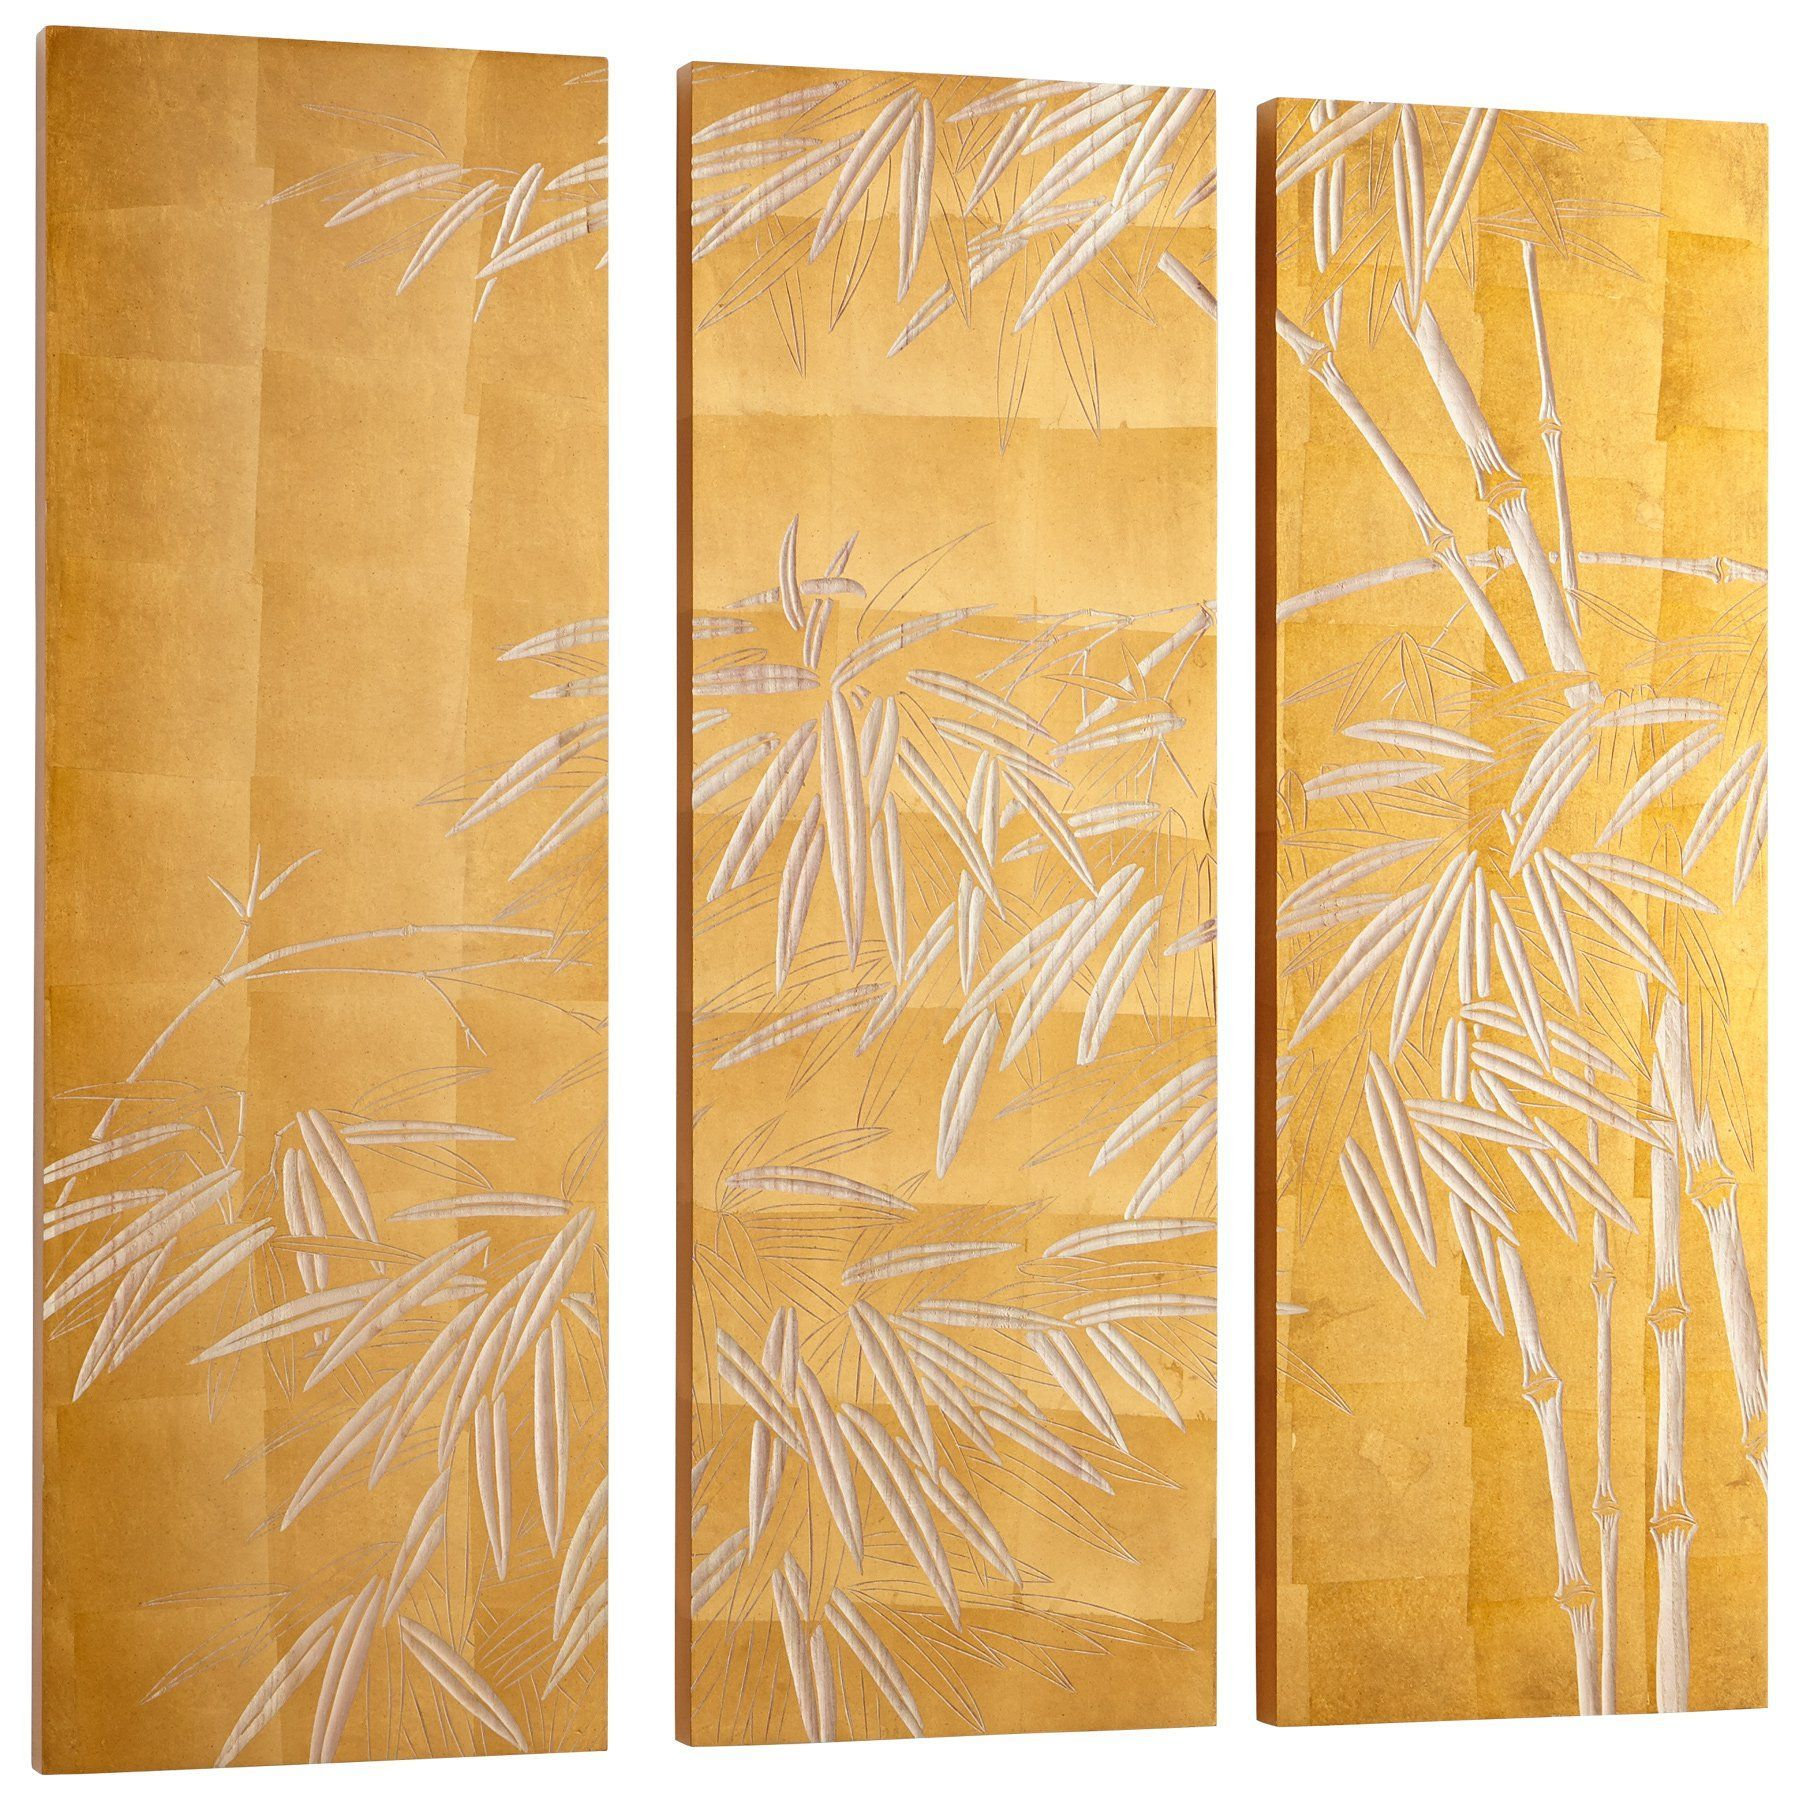 Oceania Bamboo Carved Wood Wall Art - Set of 3 by Cyan Design ...